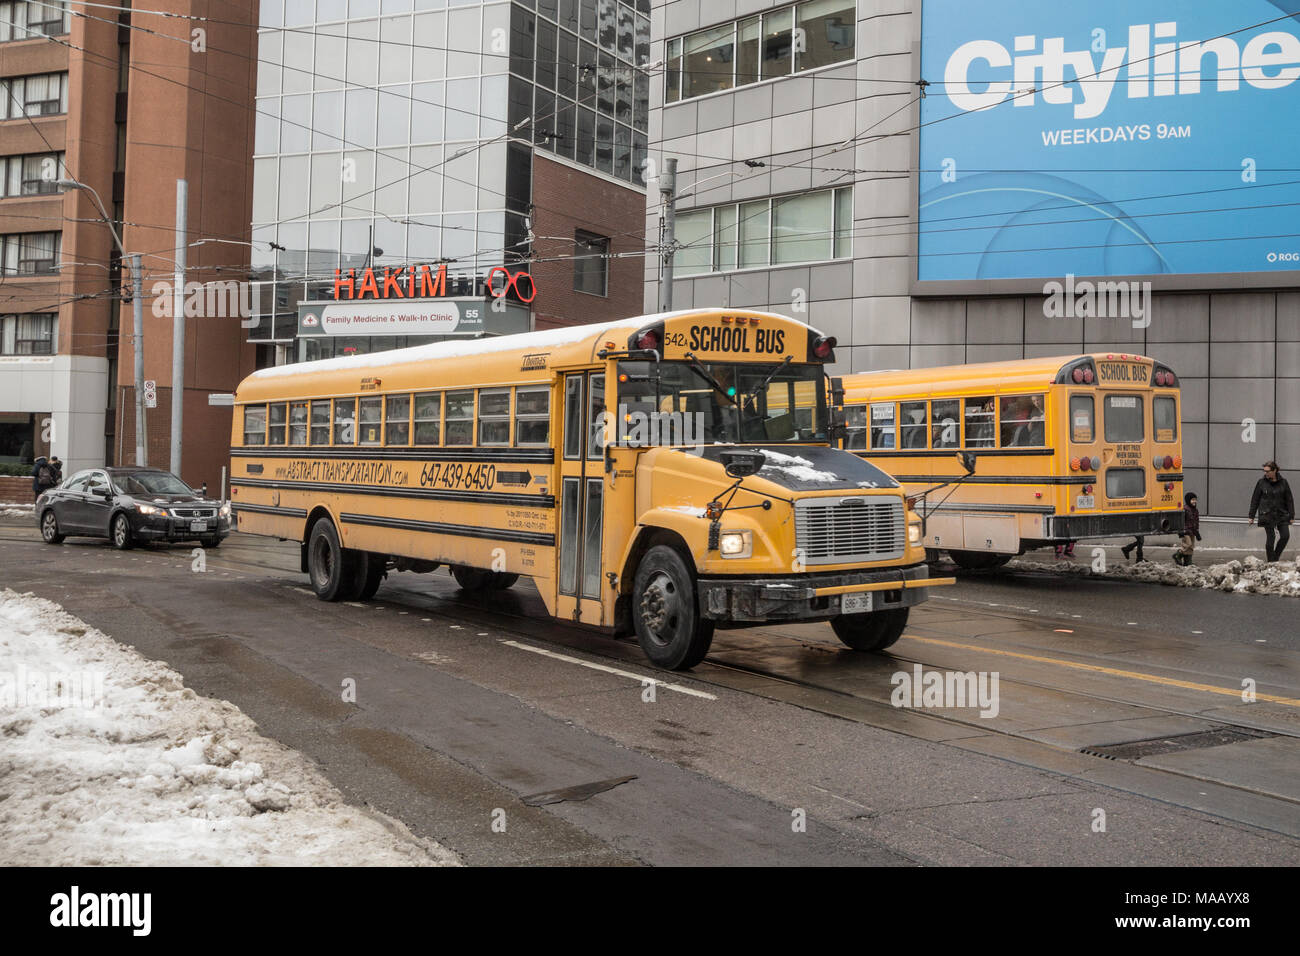 TORONTO, CANADA - DECEMBER 20, 2016: Freightliner FS 65 school bus on service in a residential part of downtown Toronto, another yellow school bus can - Stock Image